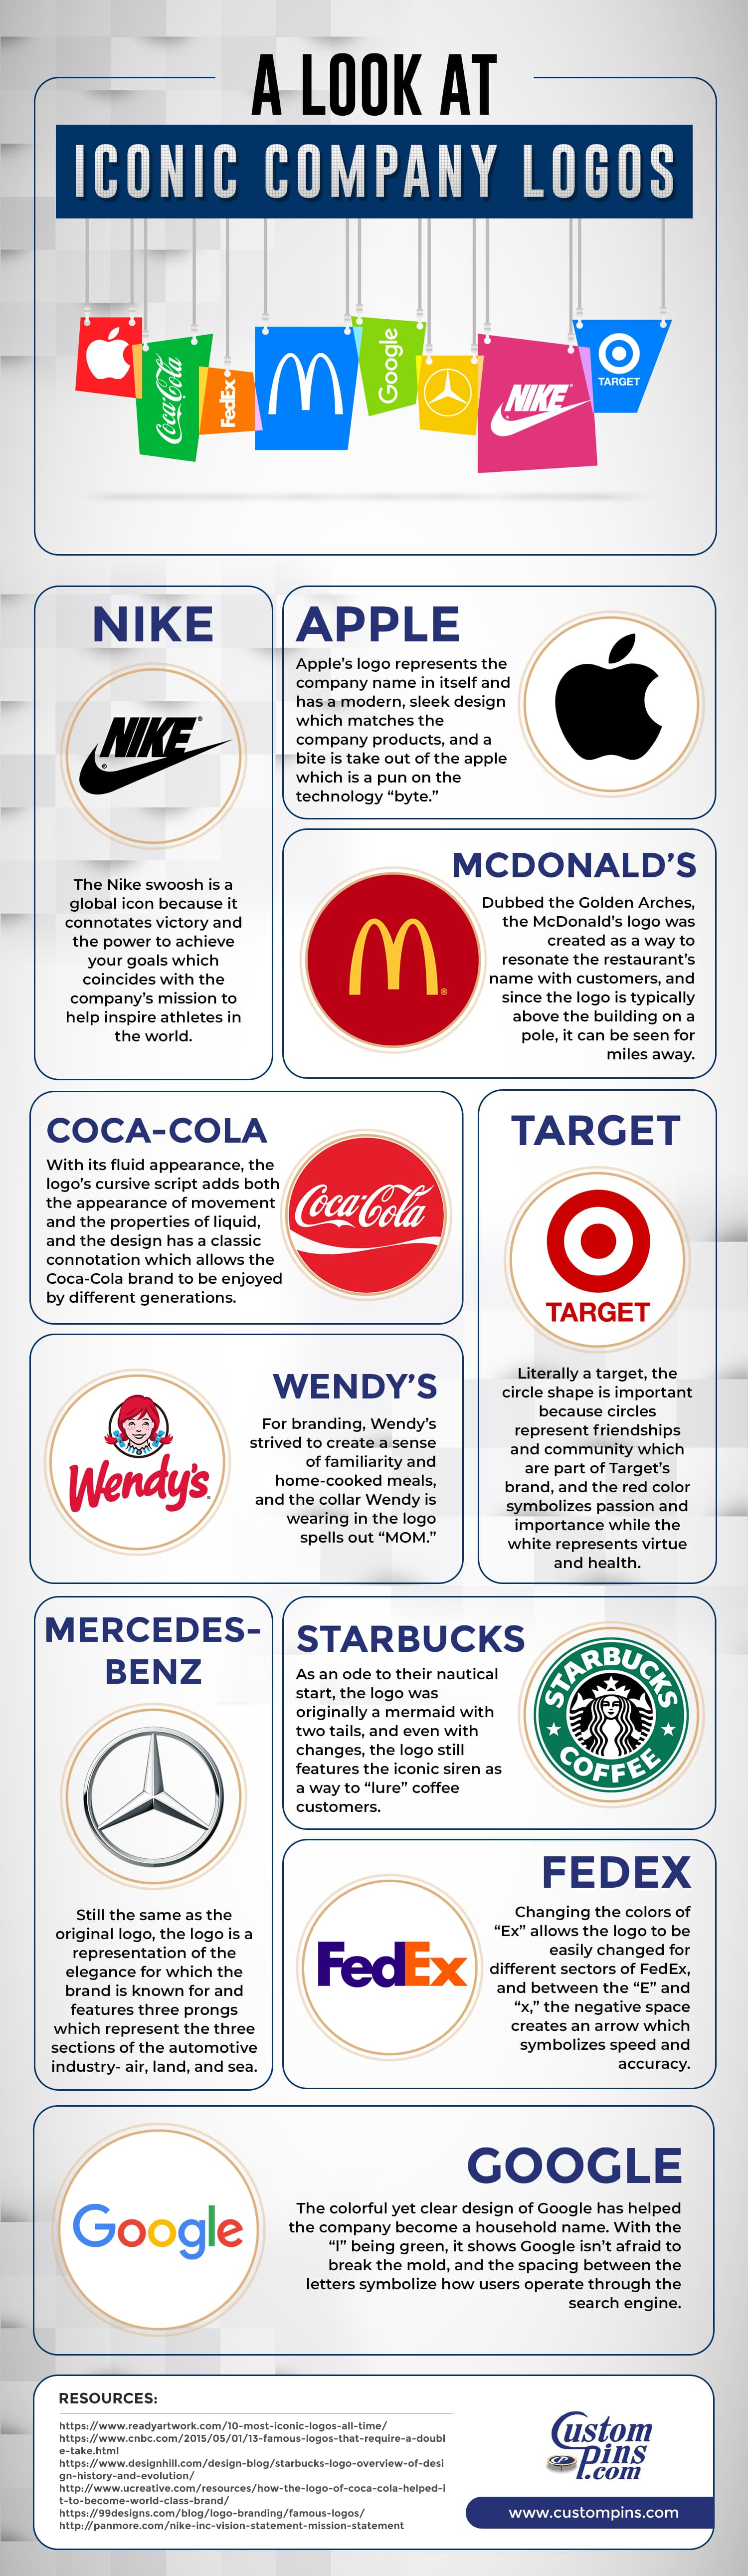 A Look at Iconic Company Logos